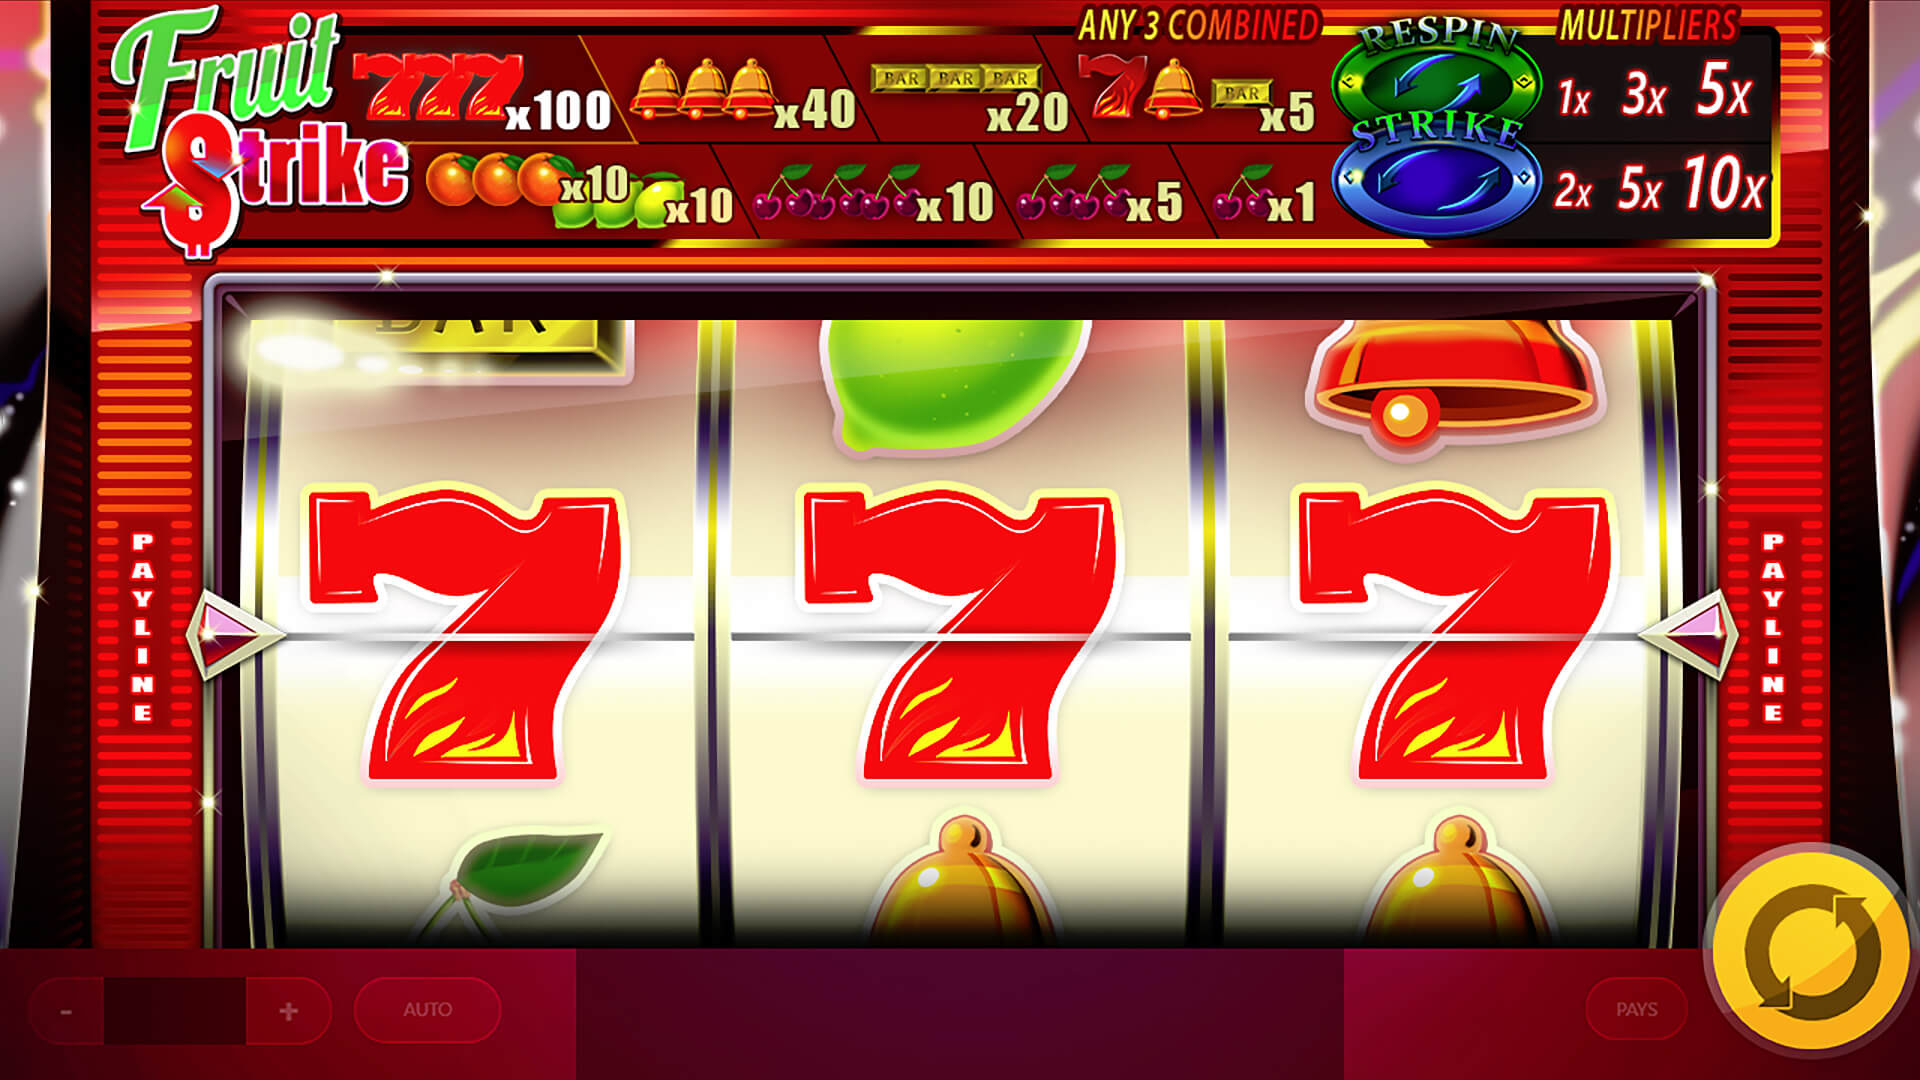 Fruit_Strike_Win_SEVENS